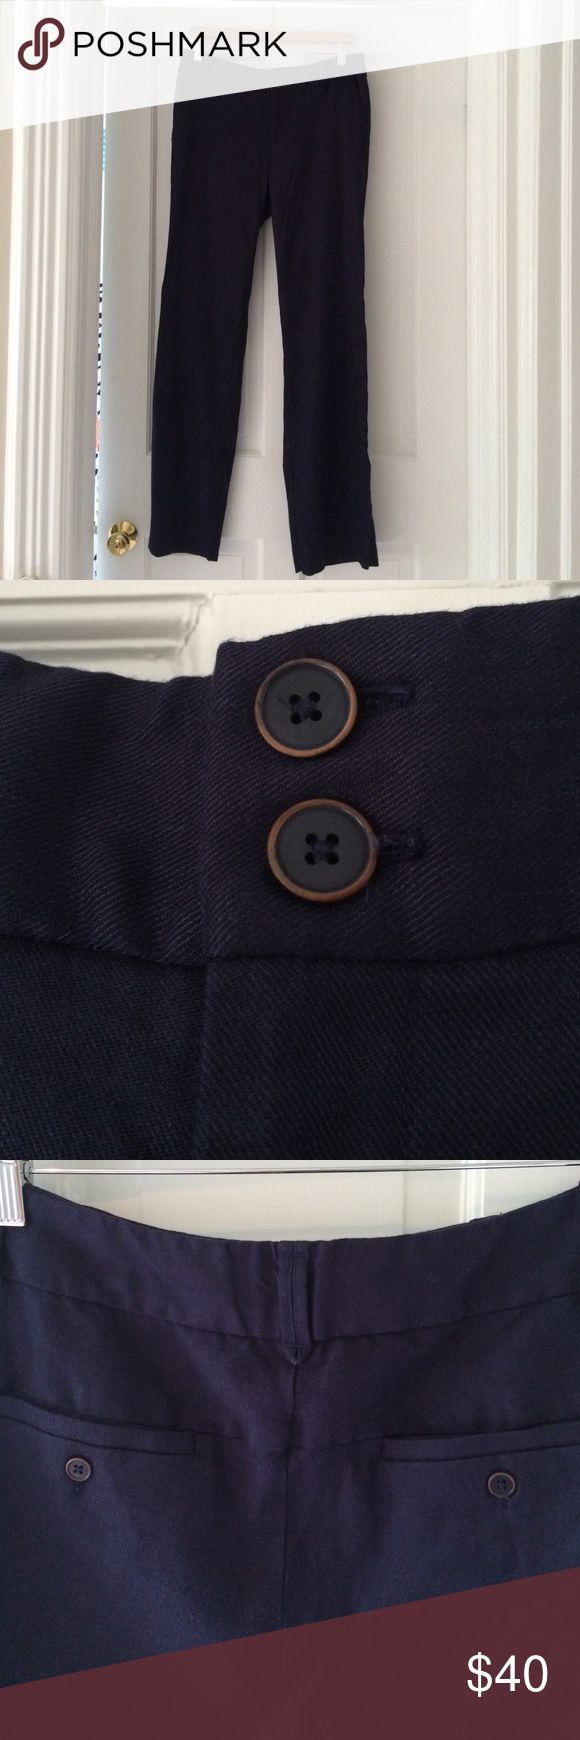 Anthropologie Dress Pants Gorgeous navy blue dress pants by Elevenses for Anthropologie in pristine condition! Anthropologie Pants Trousers